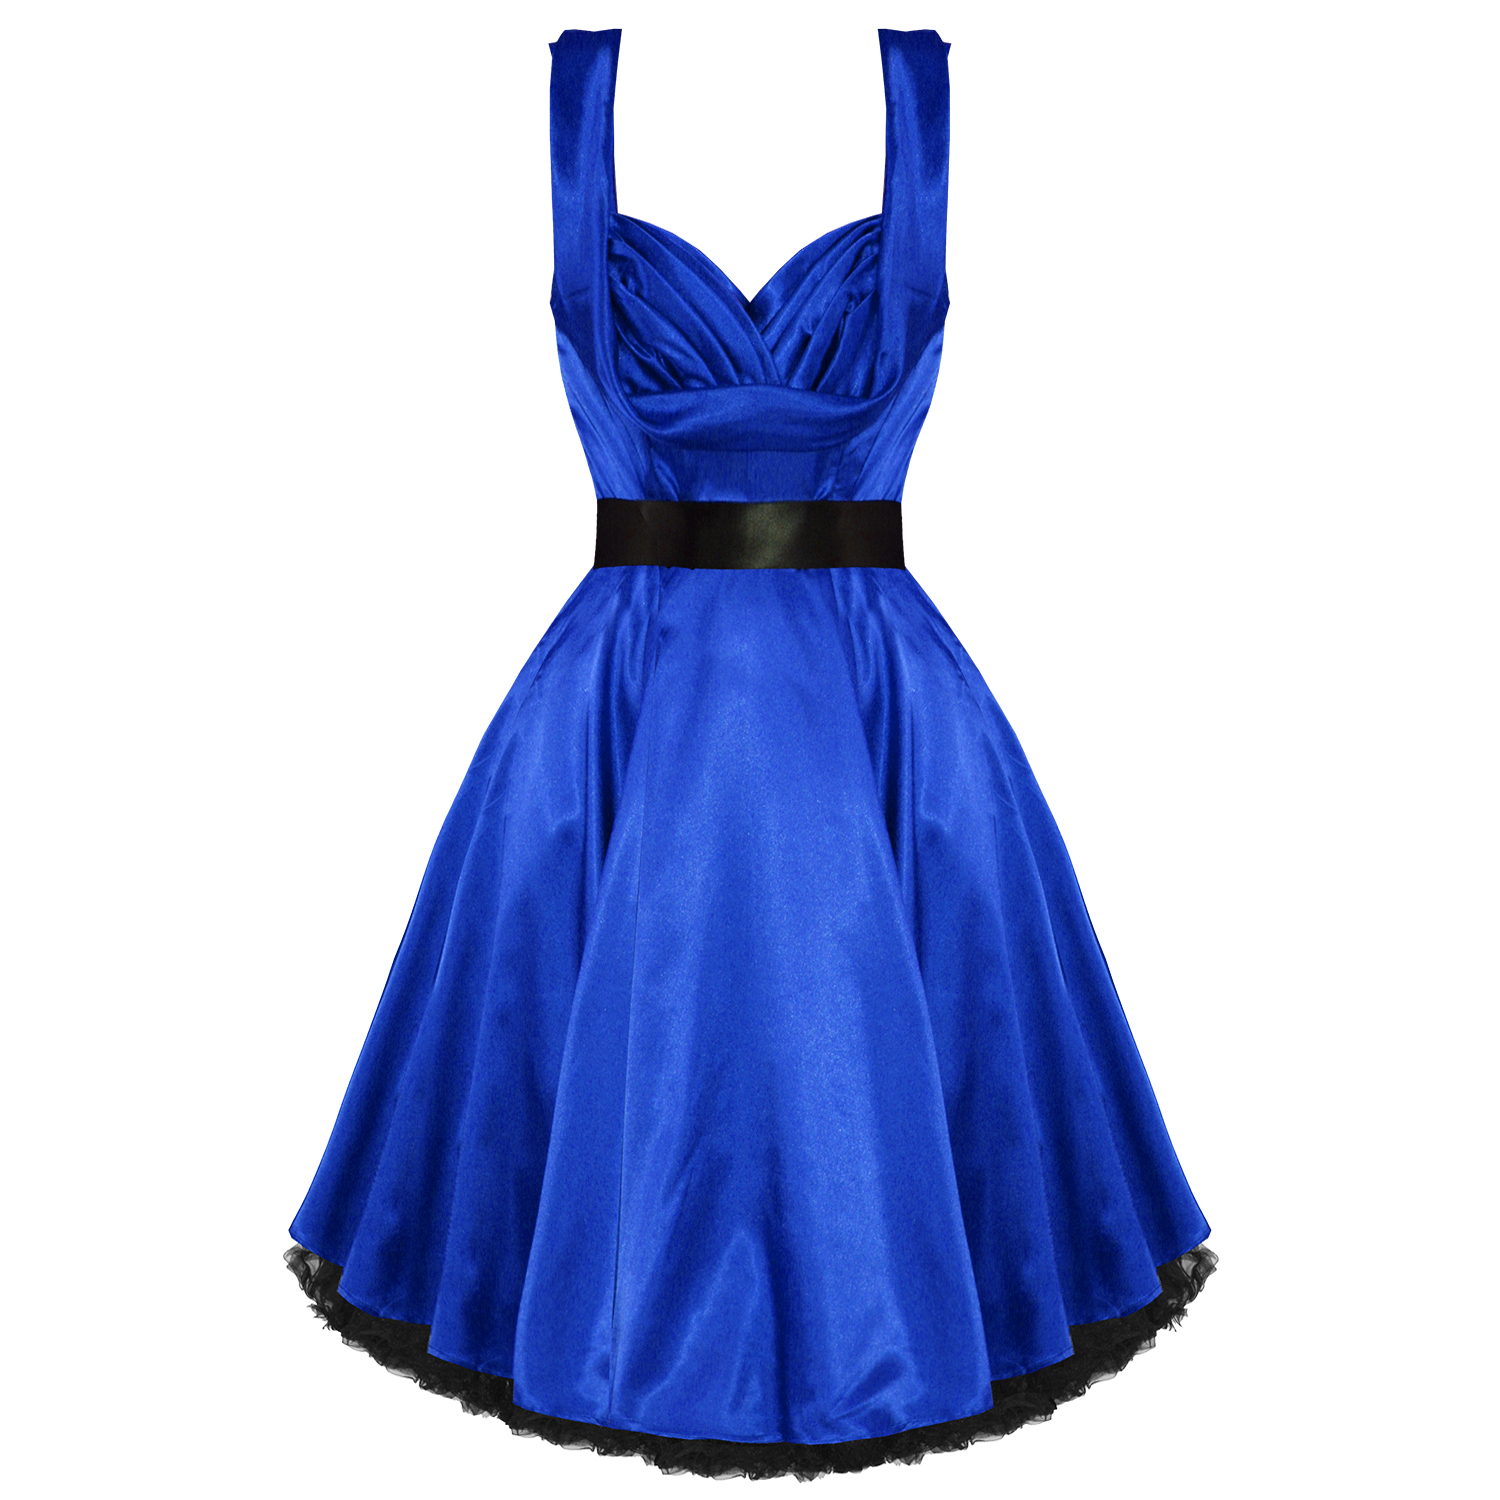 f1ad1158c2 Hearts and Roses London Blue Satin 1950s Dress | Plus Size Dresses |  Starlet Vintage